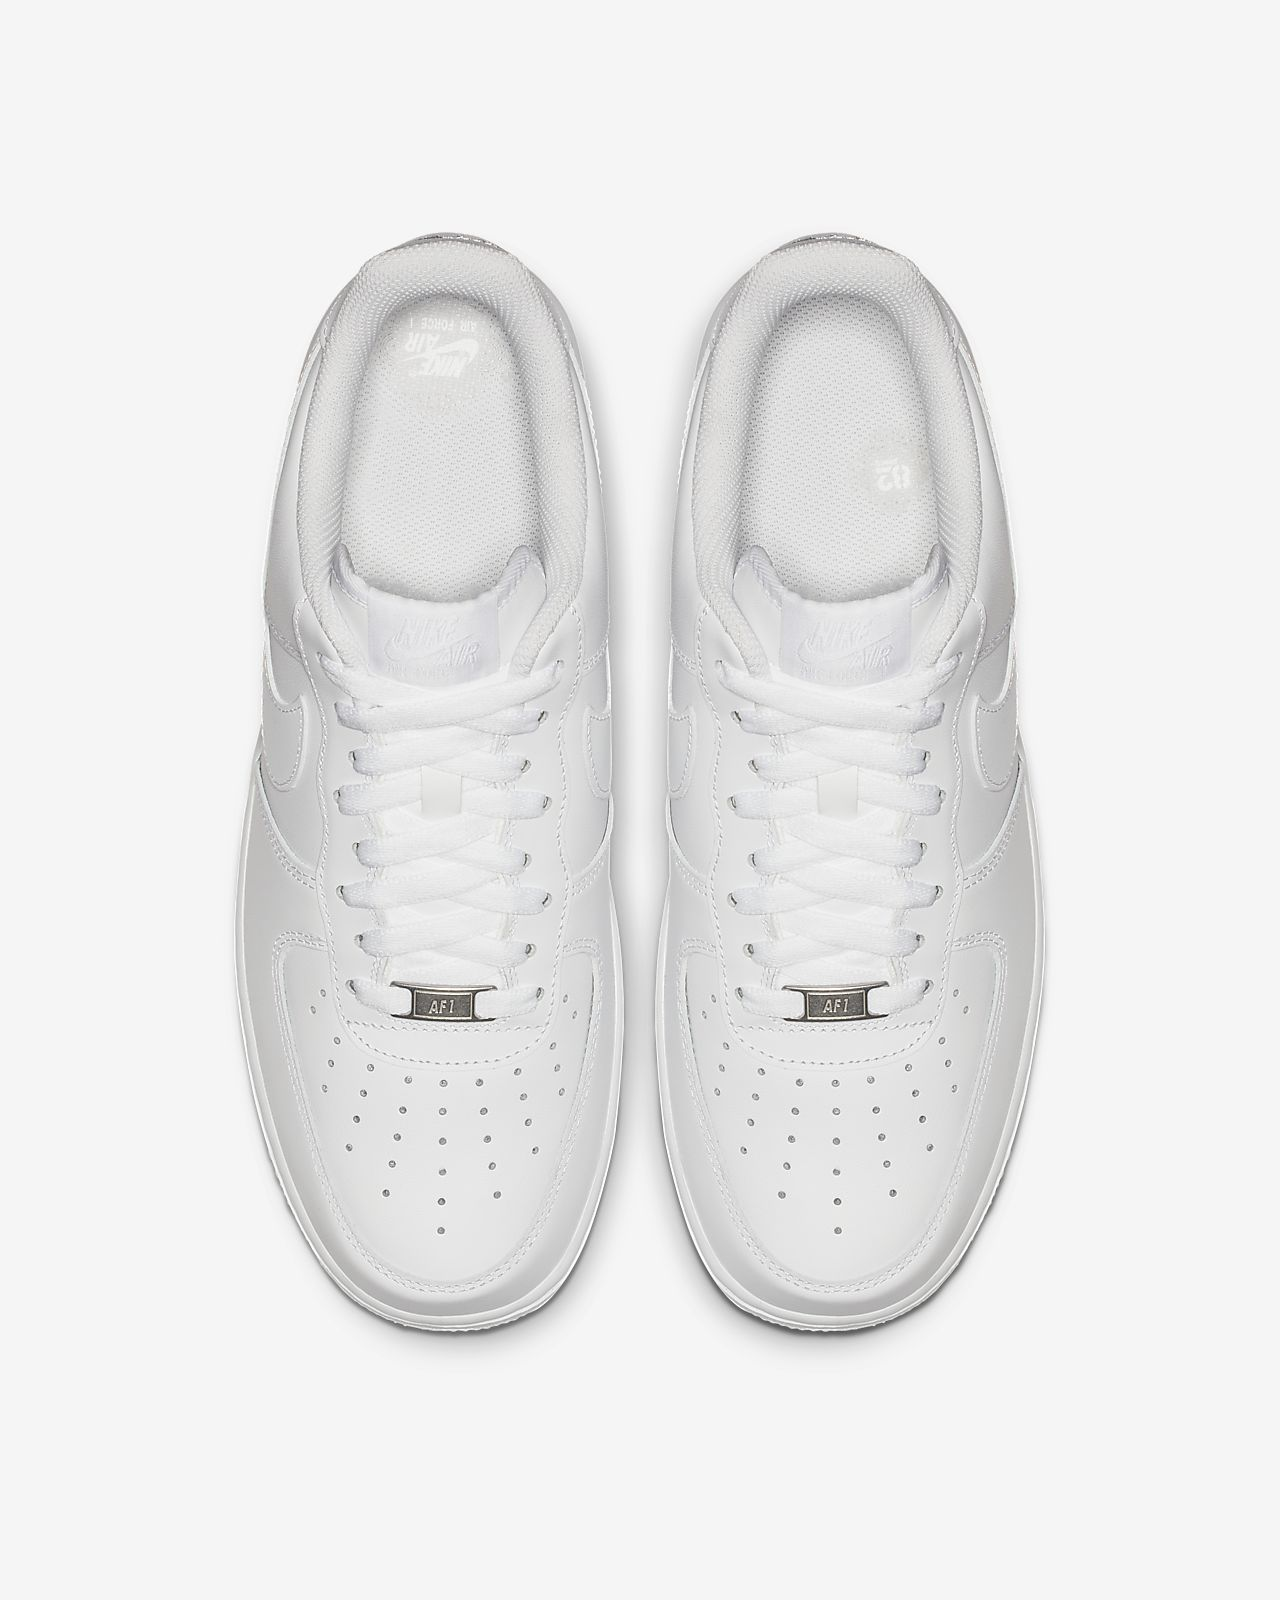 2019 Cheap Nike Air Force 1 07 3 White Black Shoes To Buy